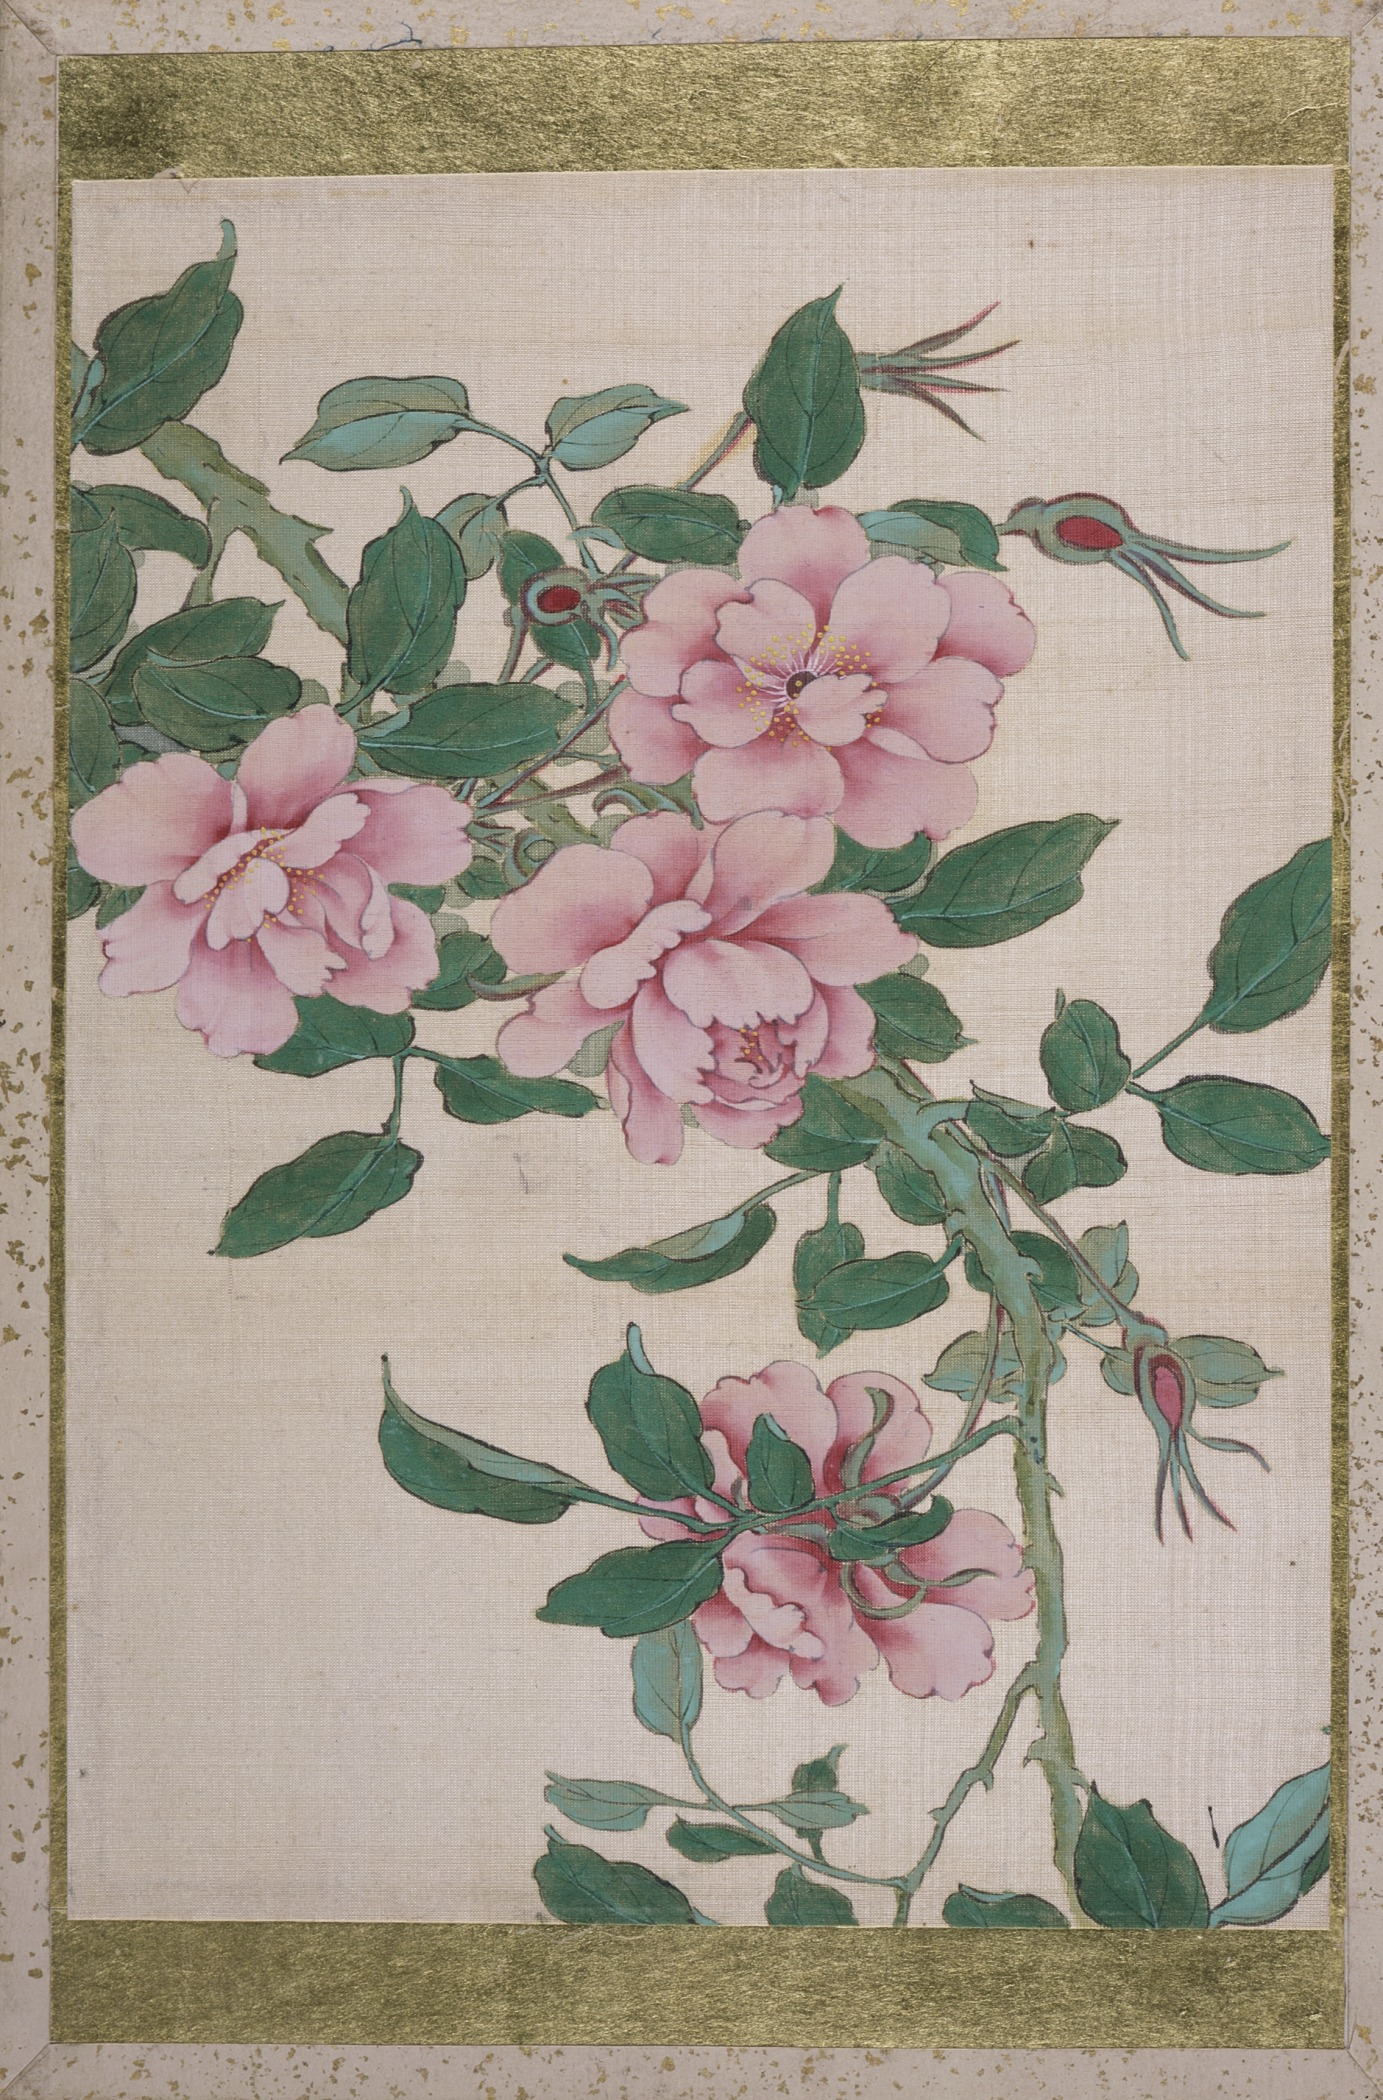 https://upload.wikimedia.org/wikipedia/commons/3/33/Pictures_of_Flowers_and_Birds_LACMA_M.85.99_%285_of_25%29.jpg